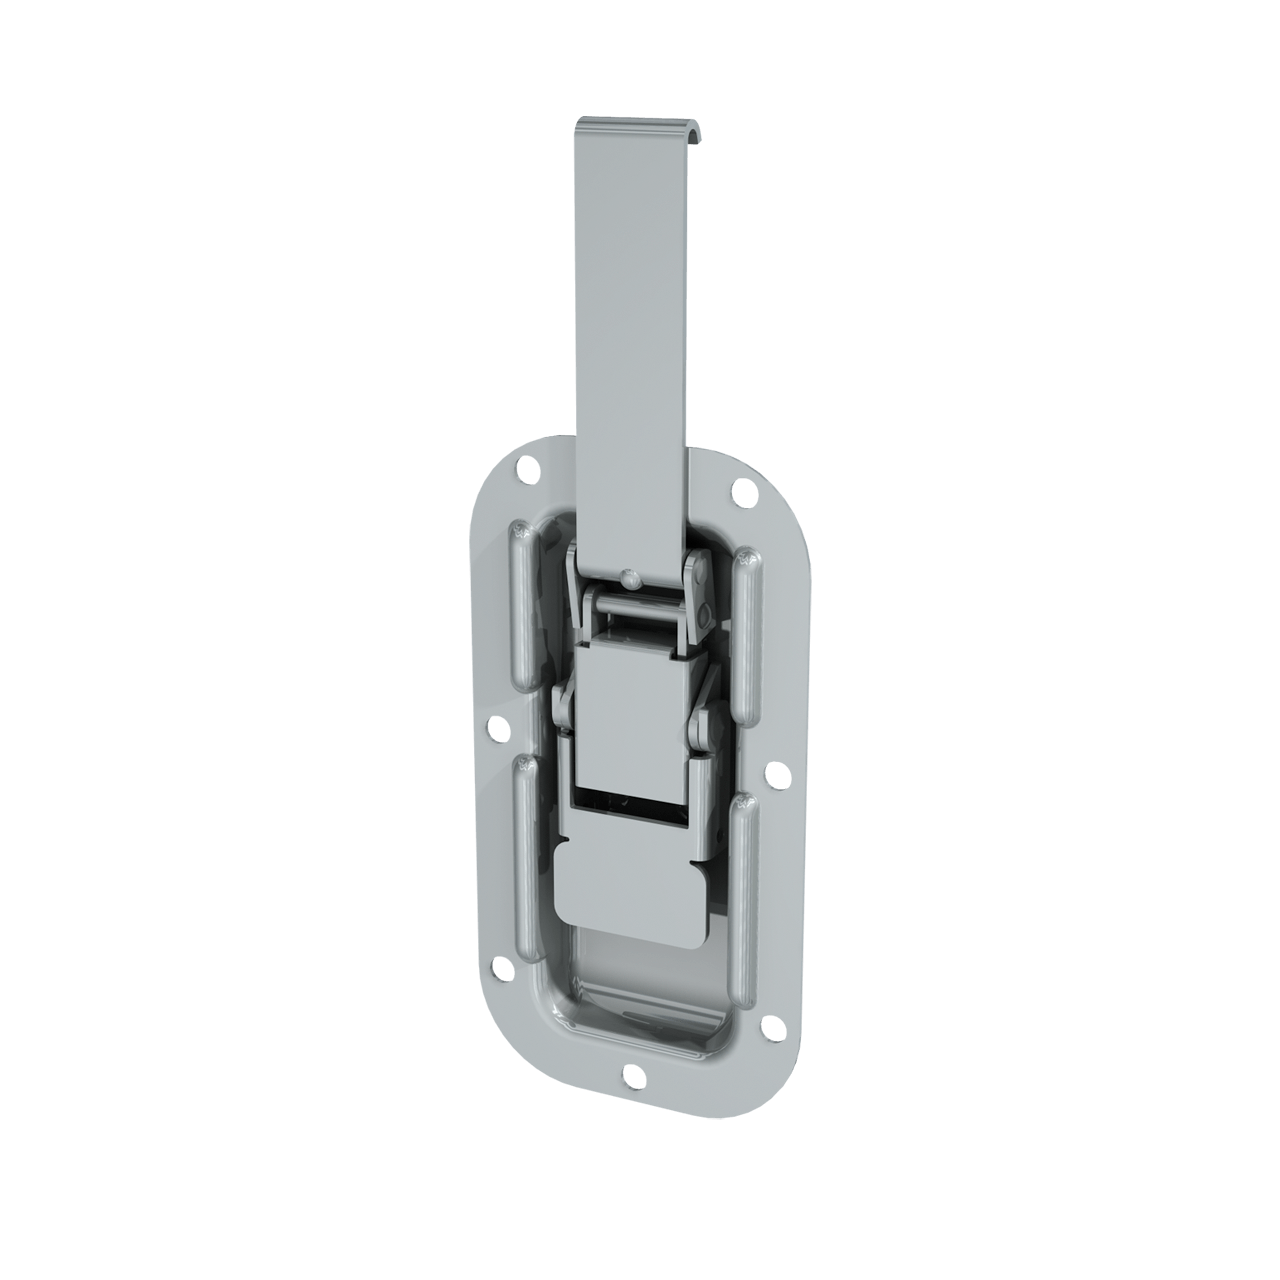 Render of Recessed Lever Operated Drawlatch